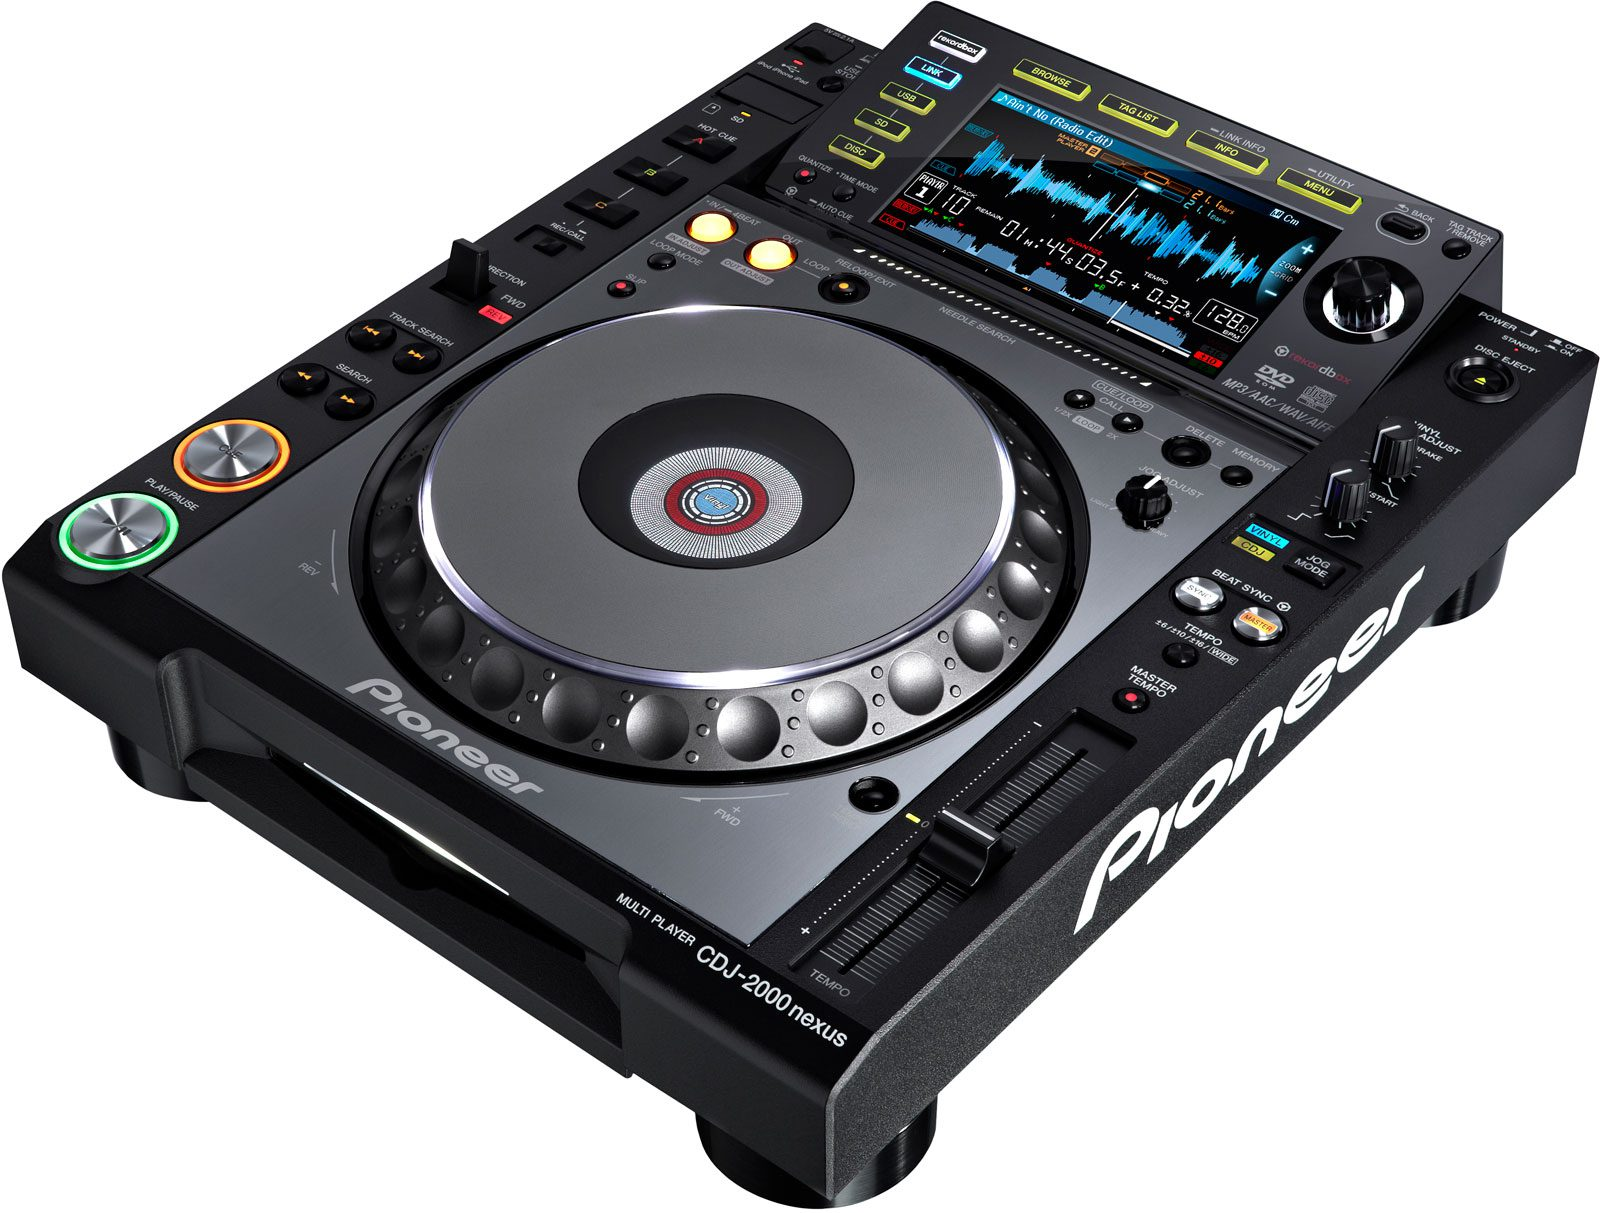 Test: Pioneer CDJ-2000 nexus – Alles wissenswerte über den neuen MediaplayerReview: Pioneer CDJ-2000 nexus  Everything you need to know about the new mediaplayer